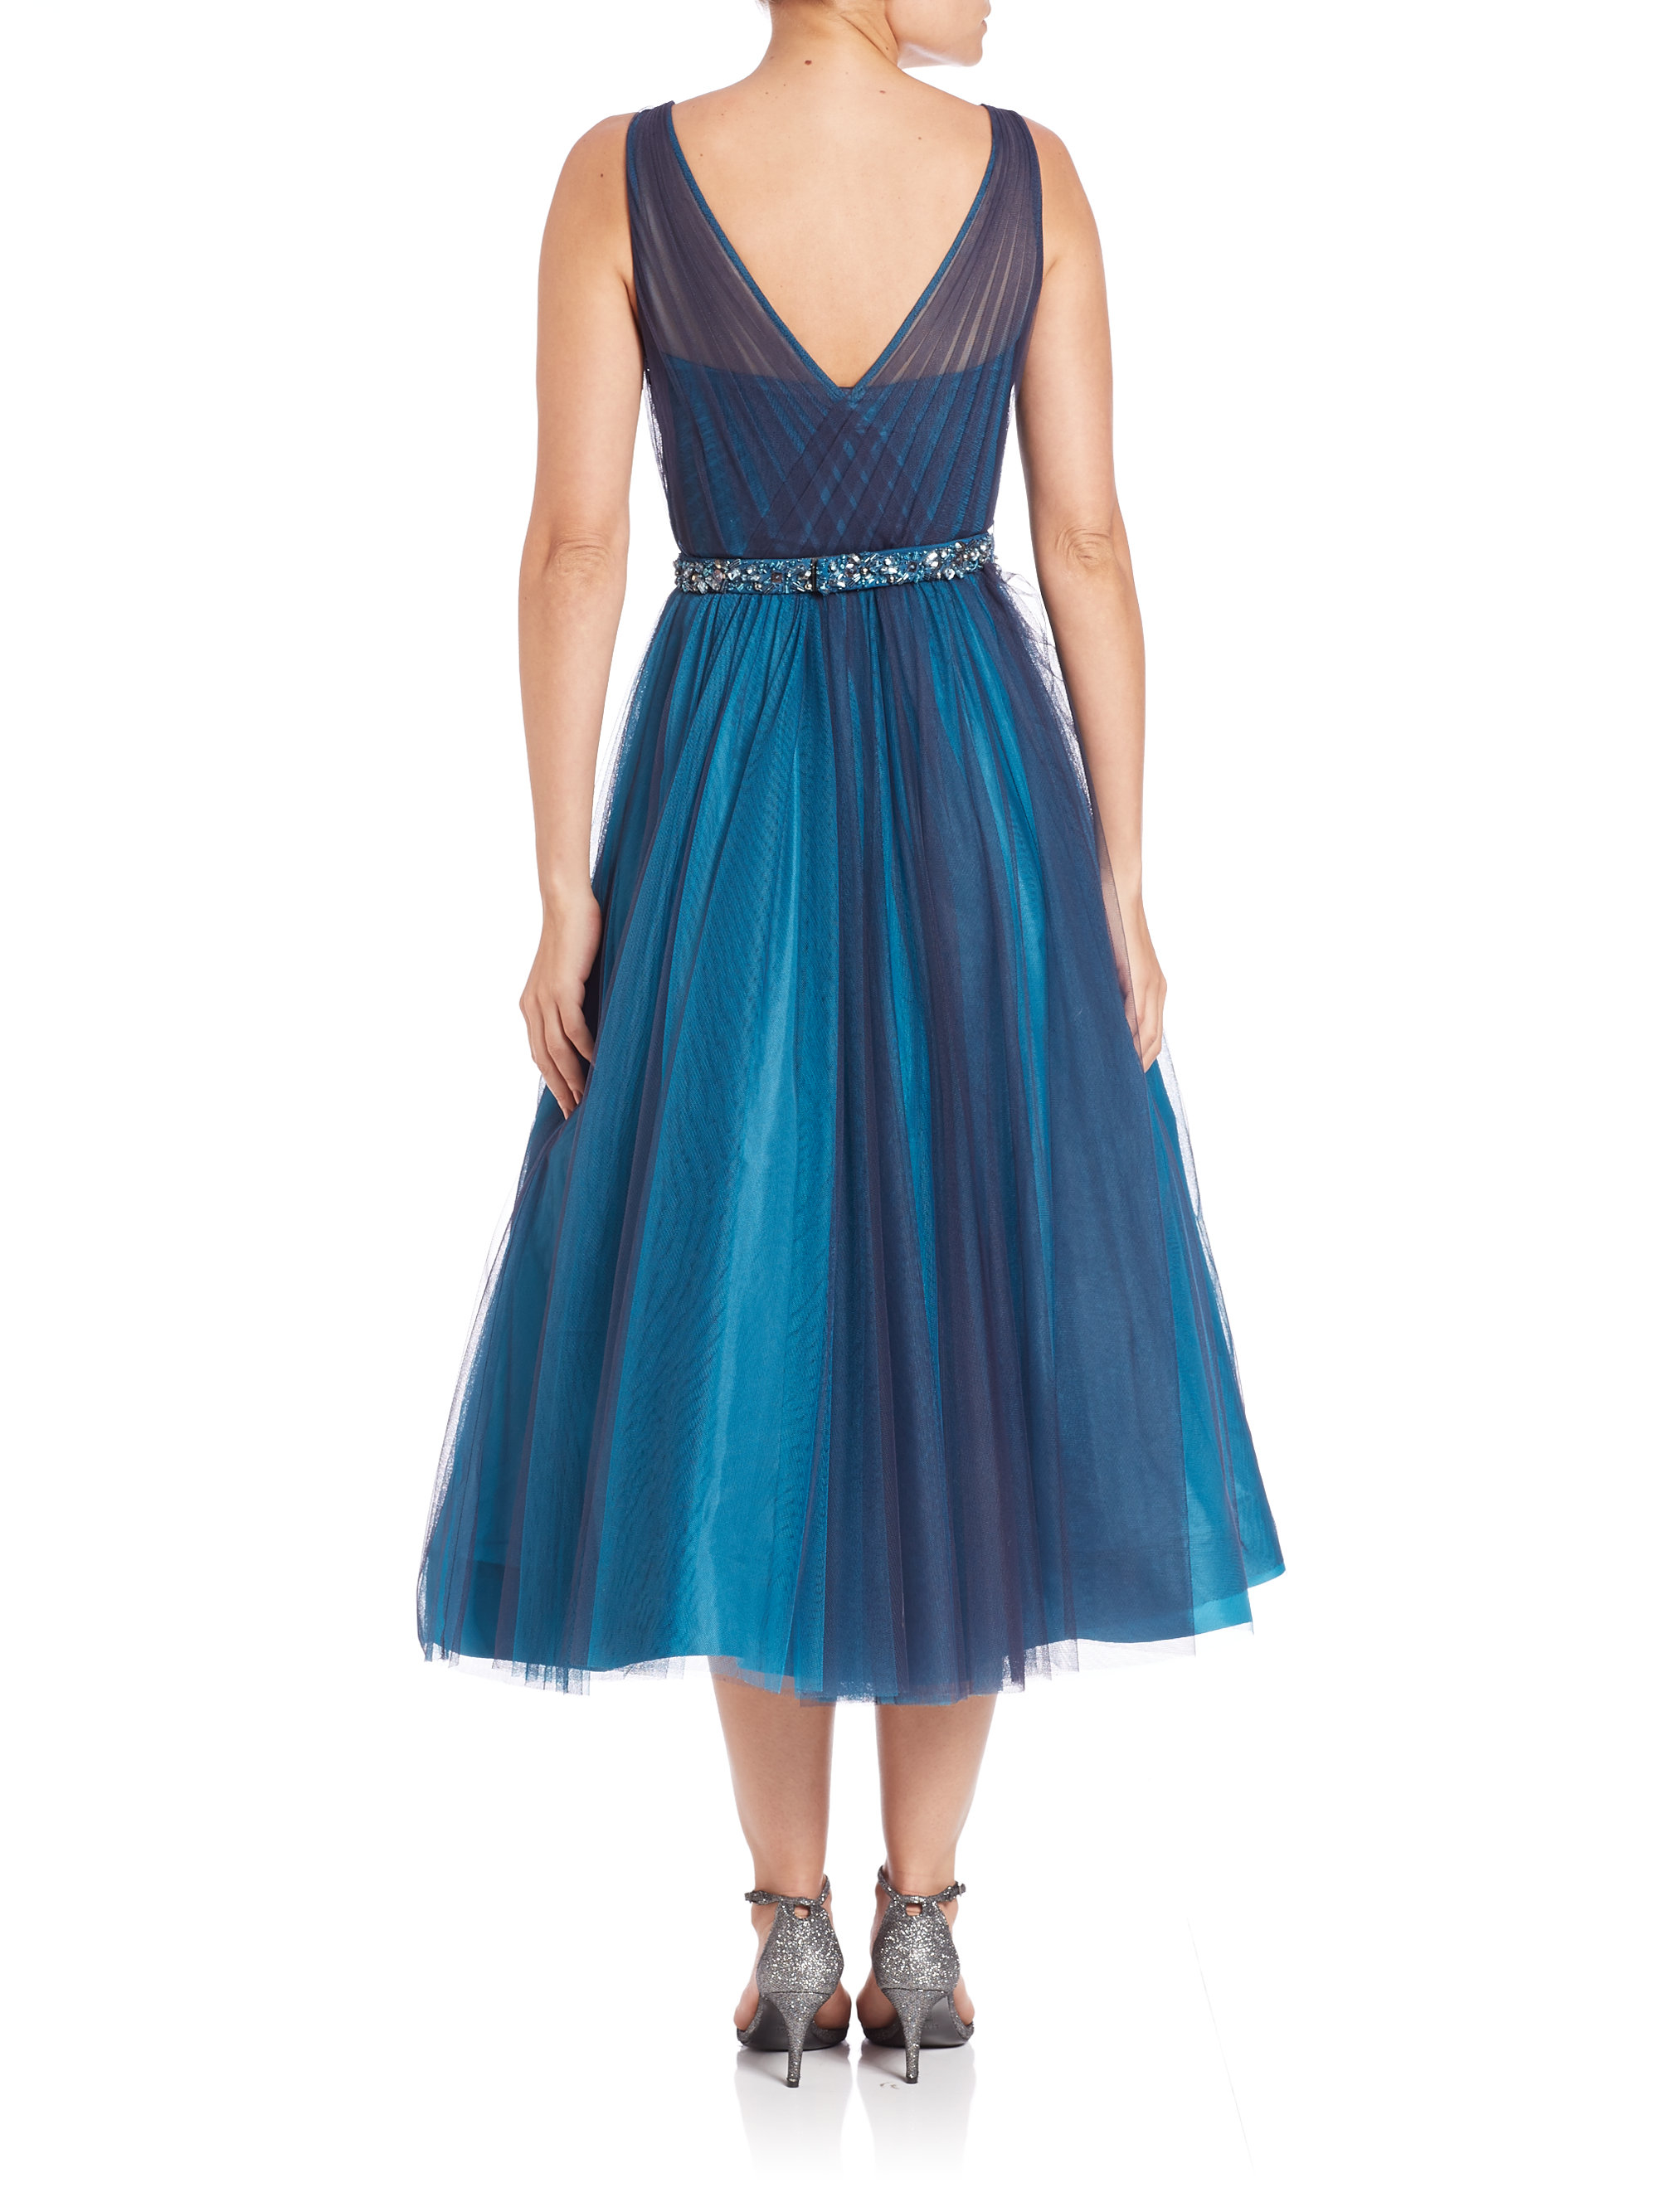 Lyst - Ml Monique Lhuillier Tulle Illusion Dress in Blue